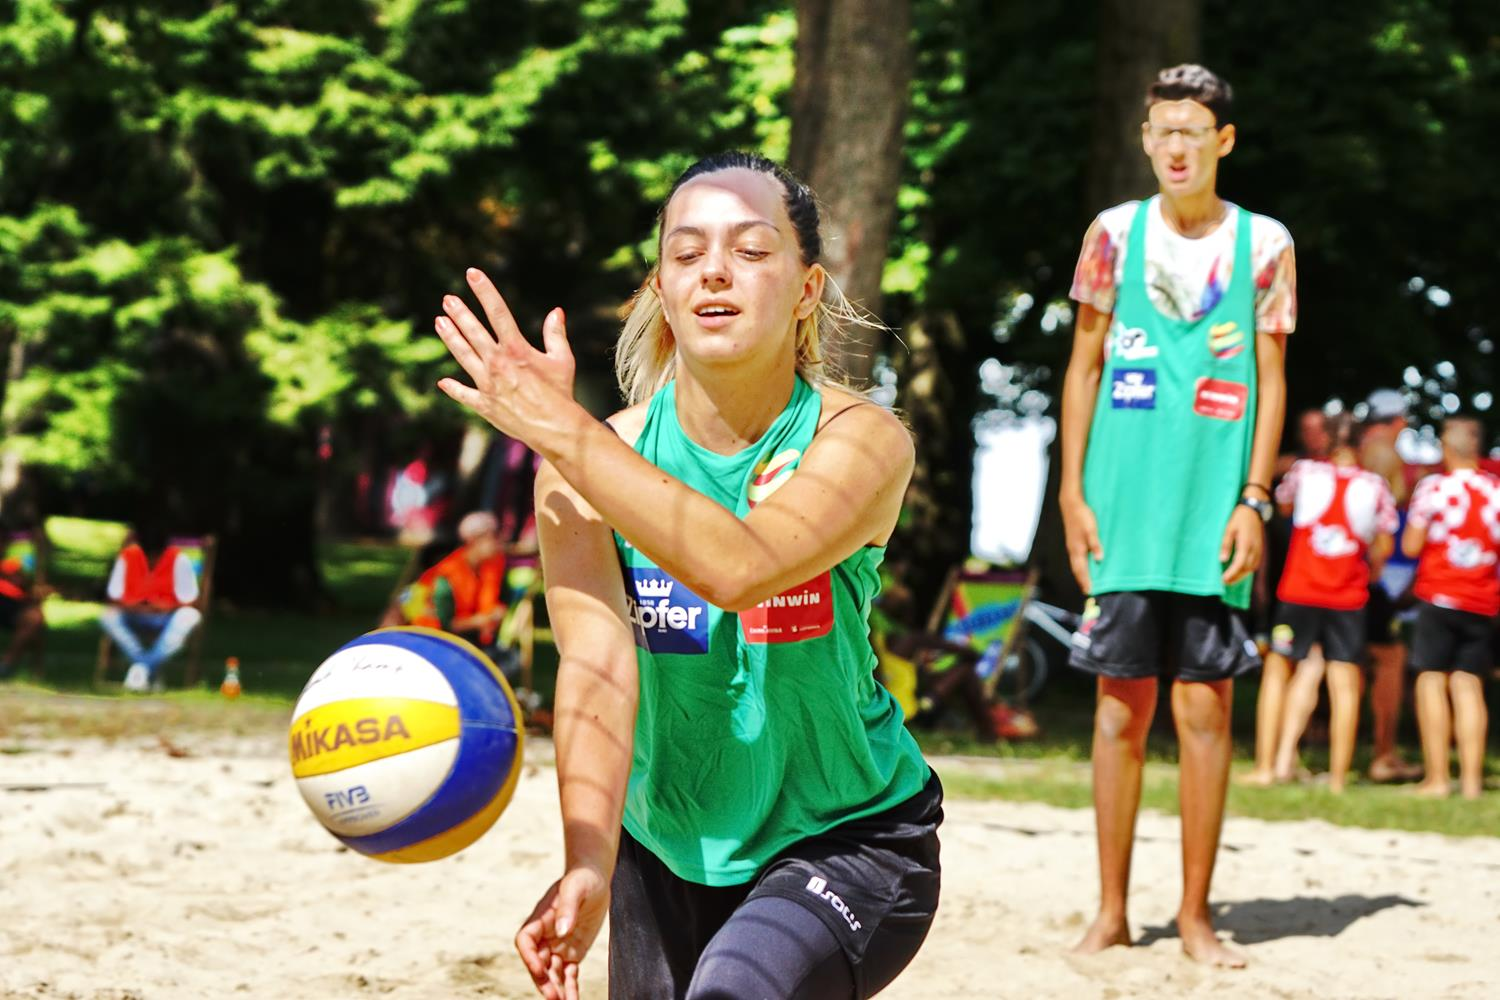 20160904_FMT_SSAS_ Vollyball_KJ (13) (Copy)